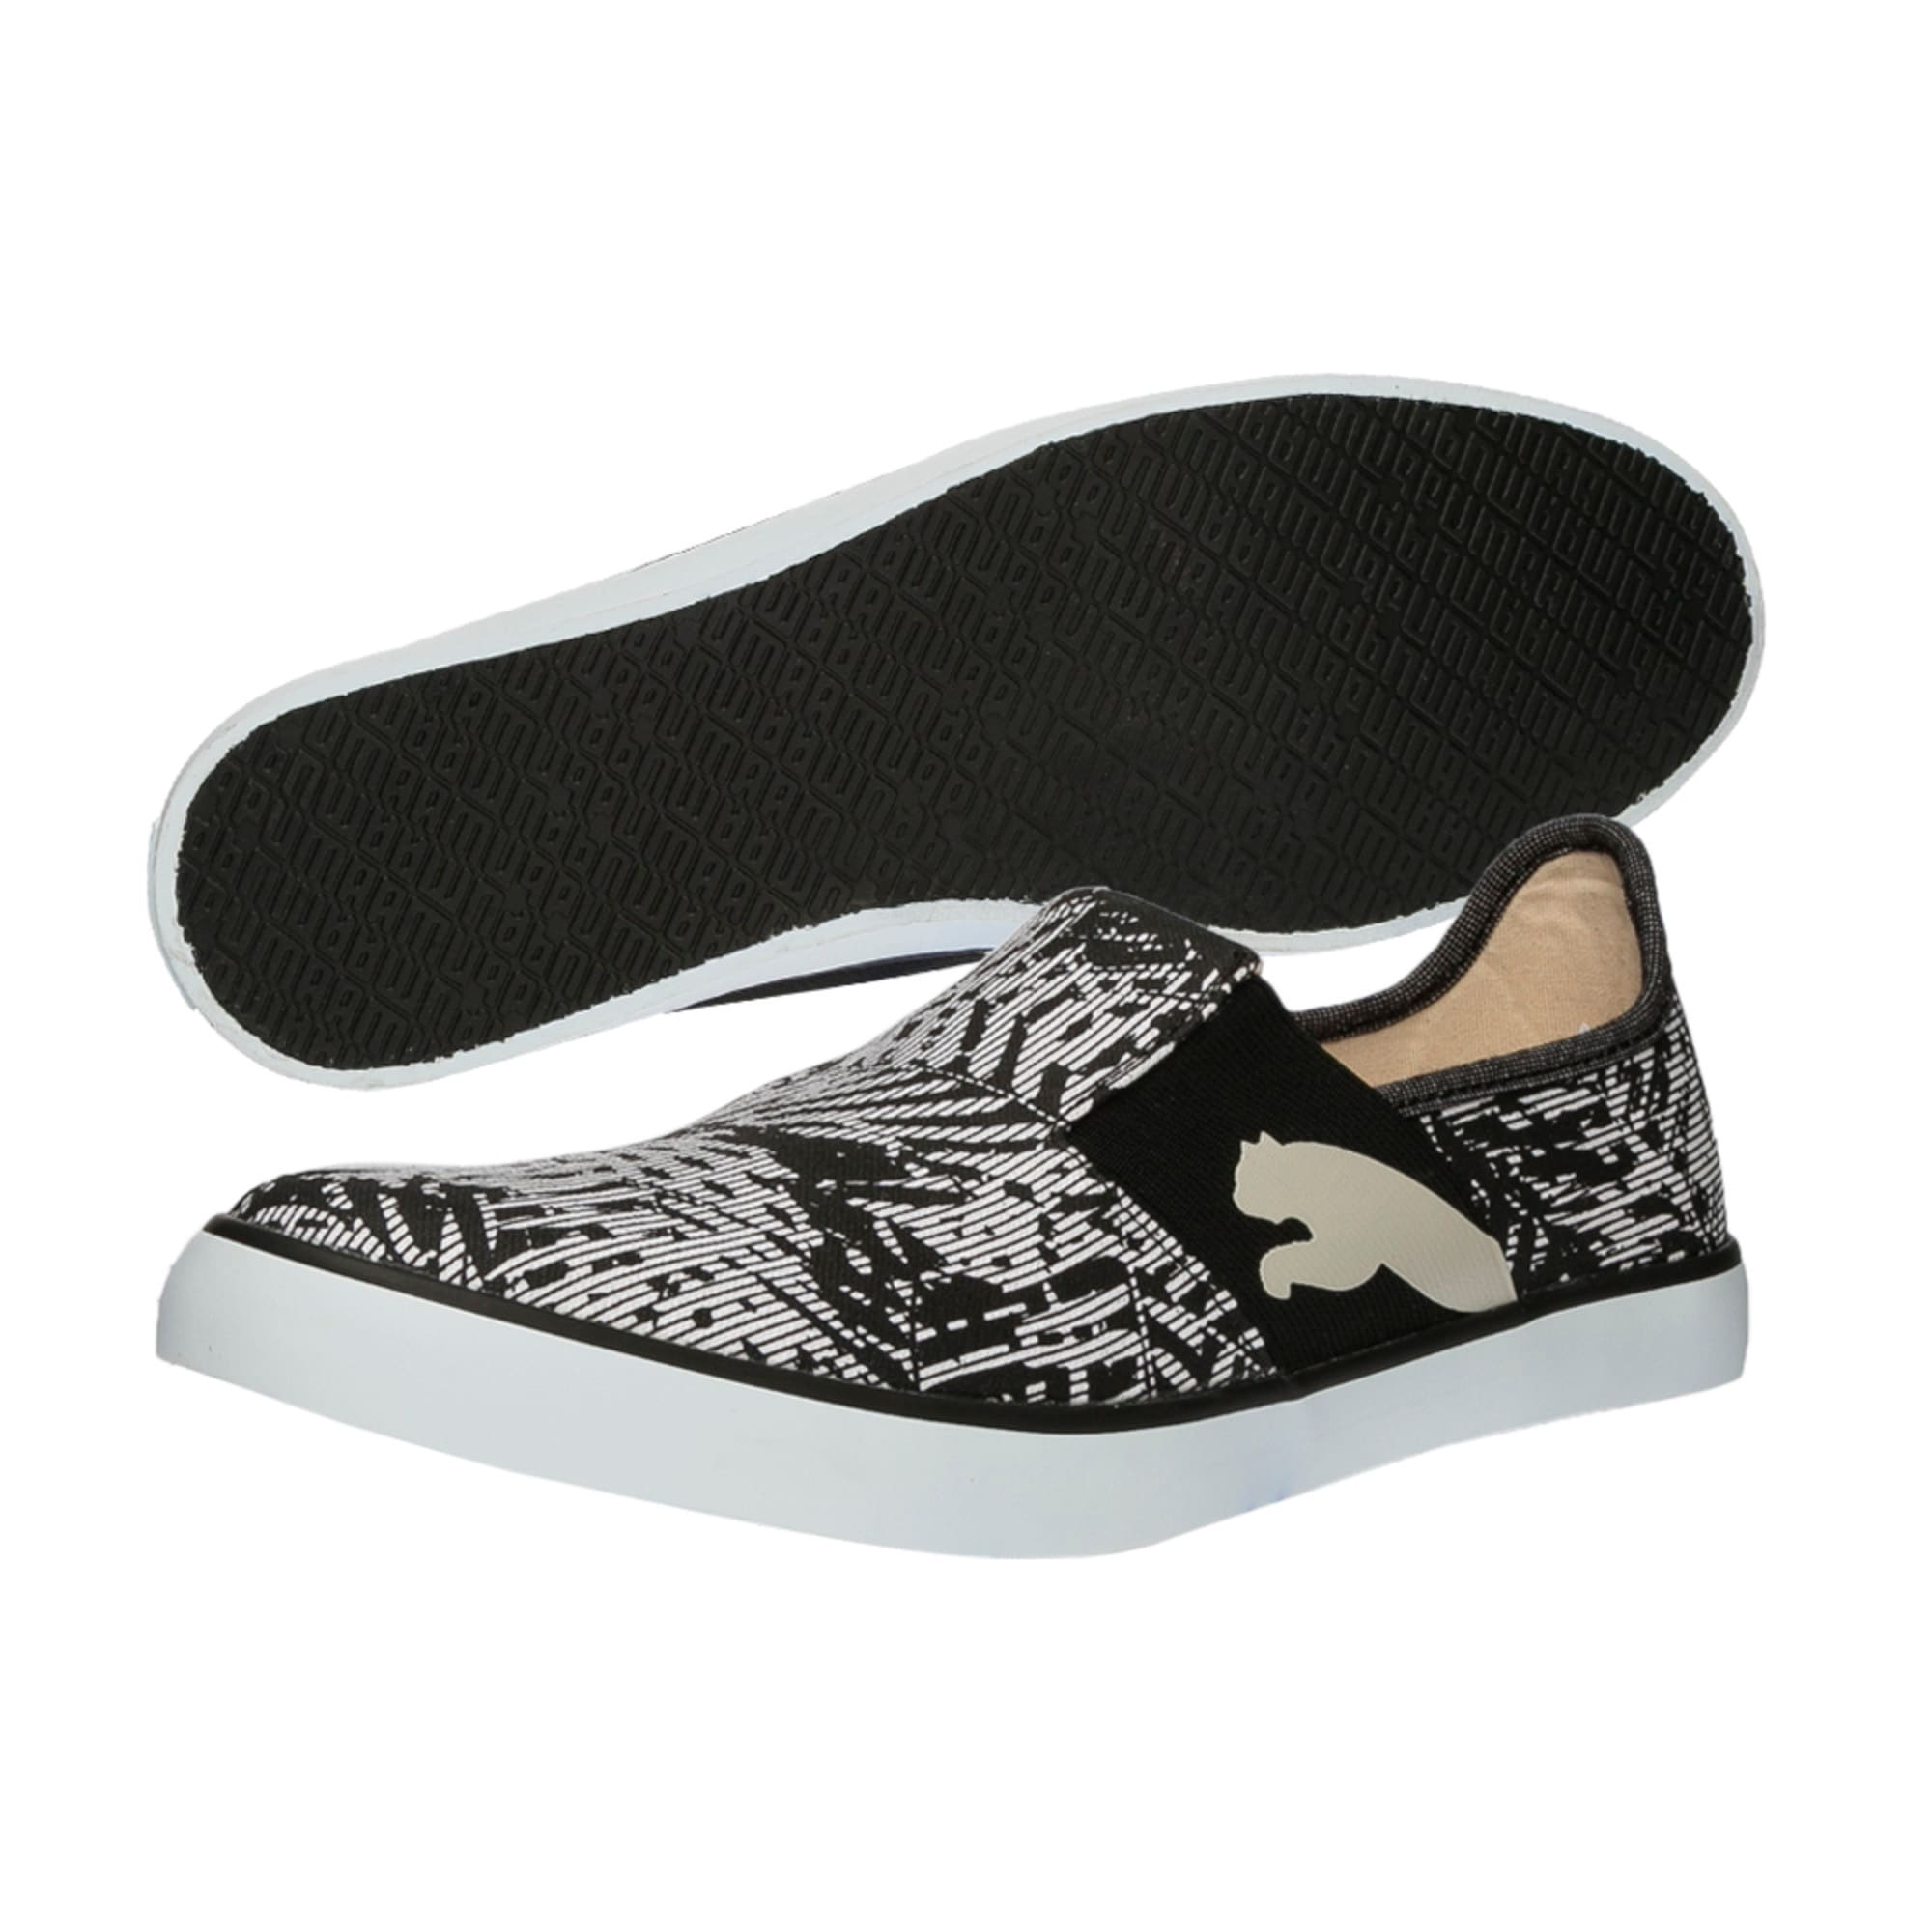 Thumbnail 6 of Lazy Slip On Graphic DP, Black-Gray Violet-White, medium-IND